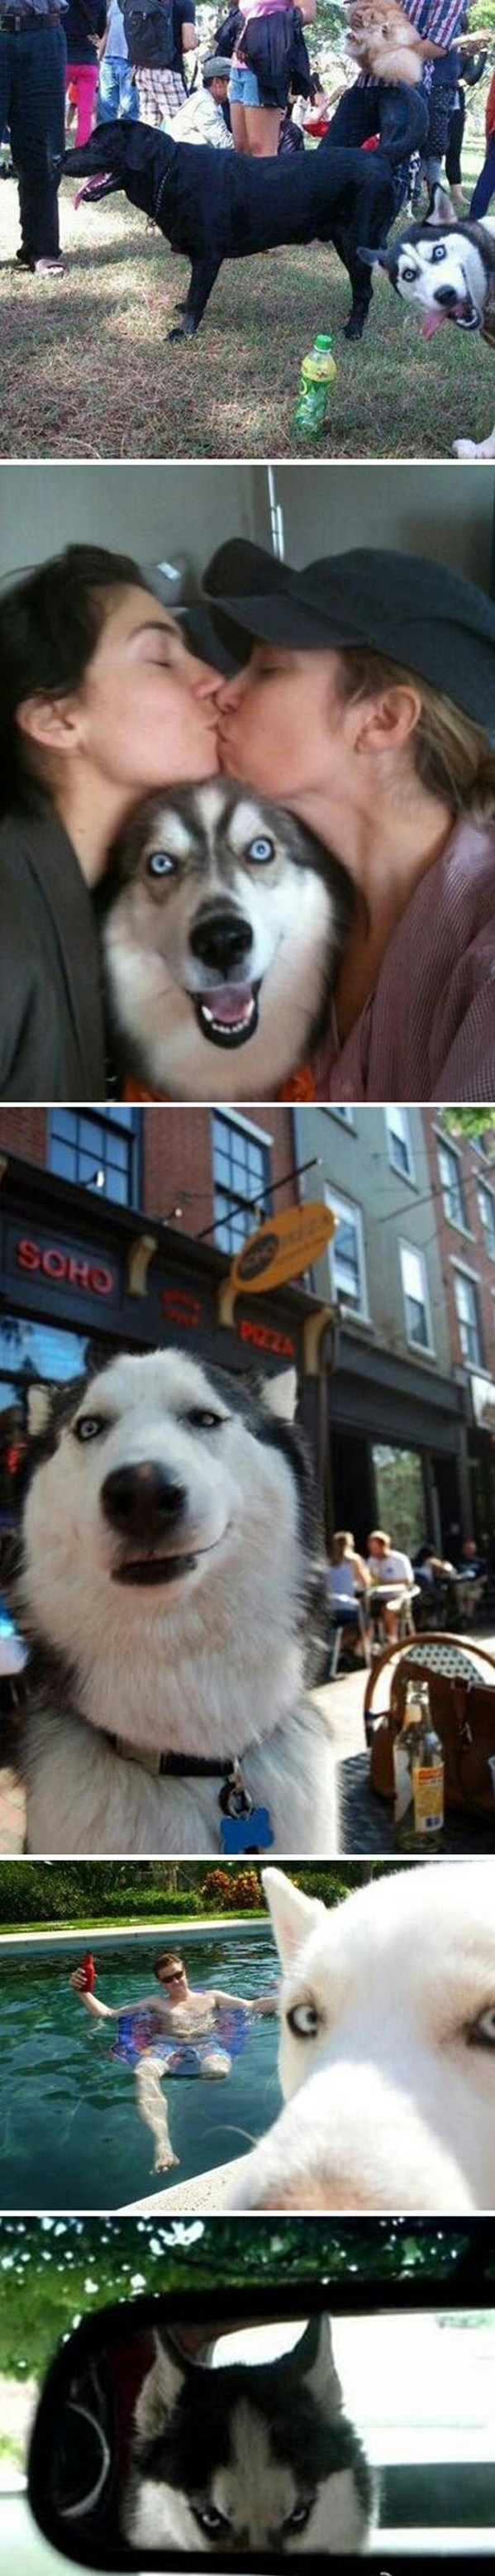 funny-picture-dog-phto-bomb